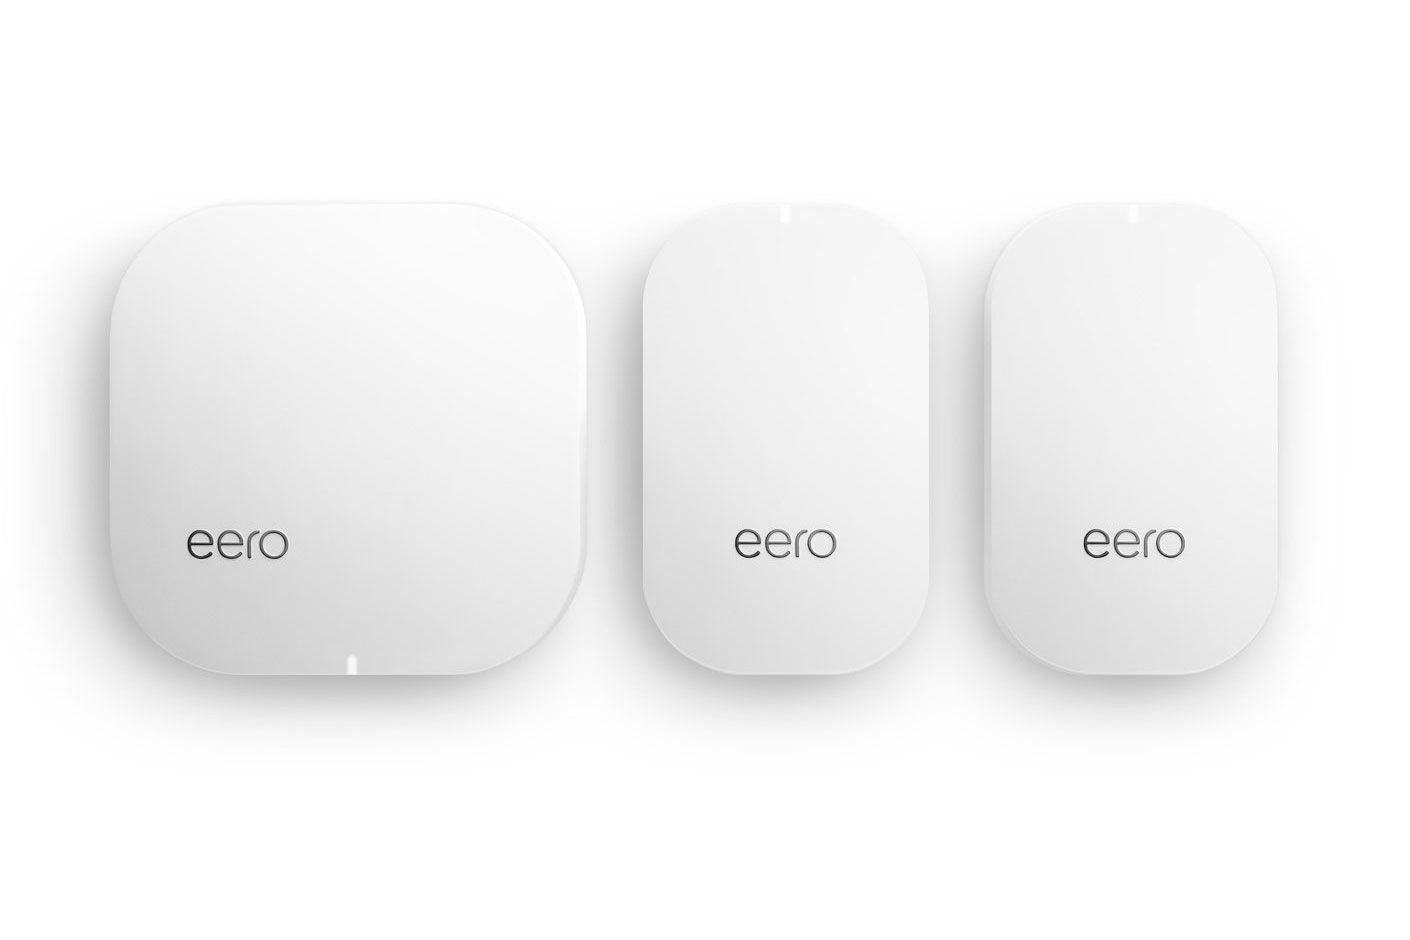 Eero Home WiFi System (1 Eero Base Unit and 2 Eero Beacons)